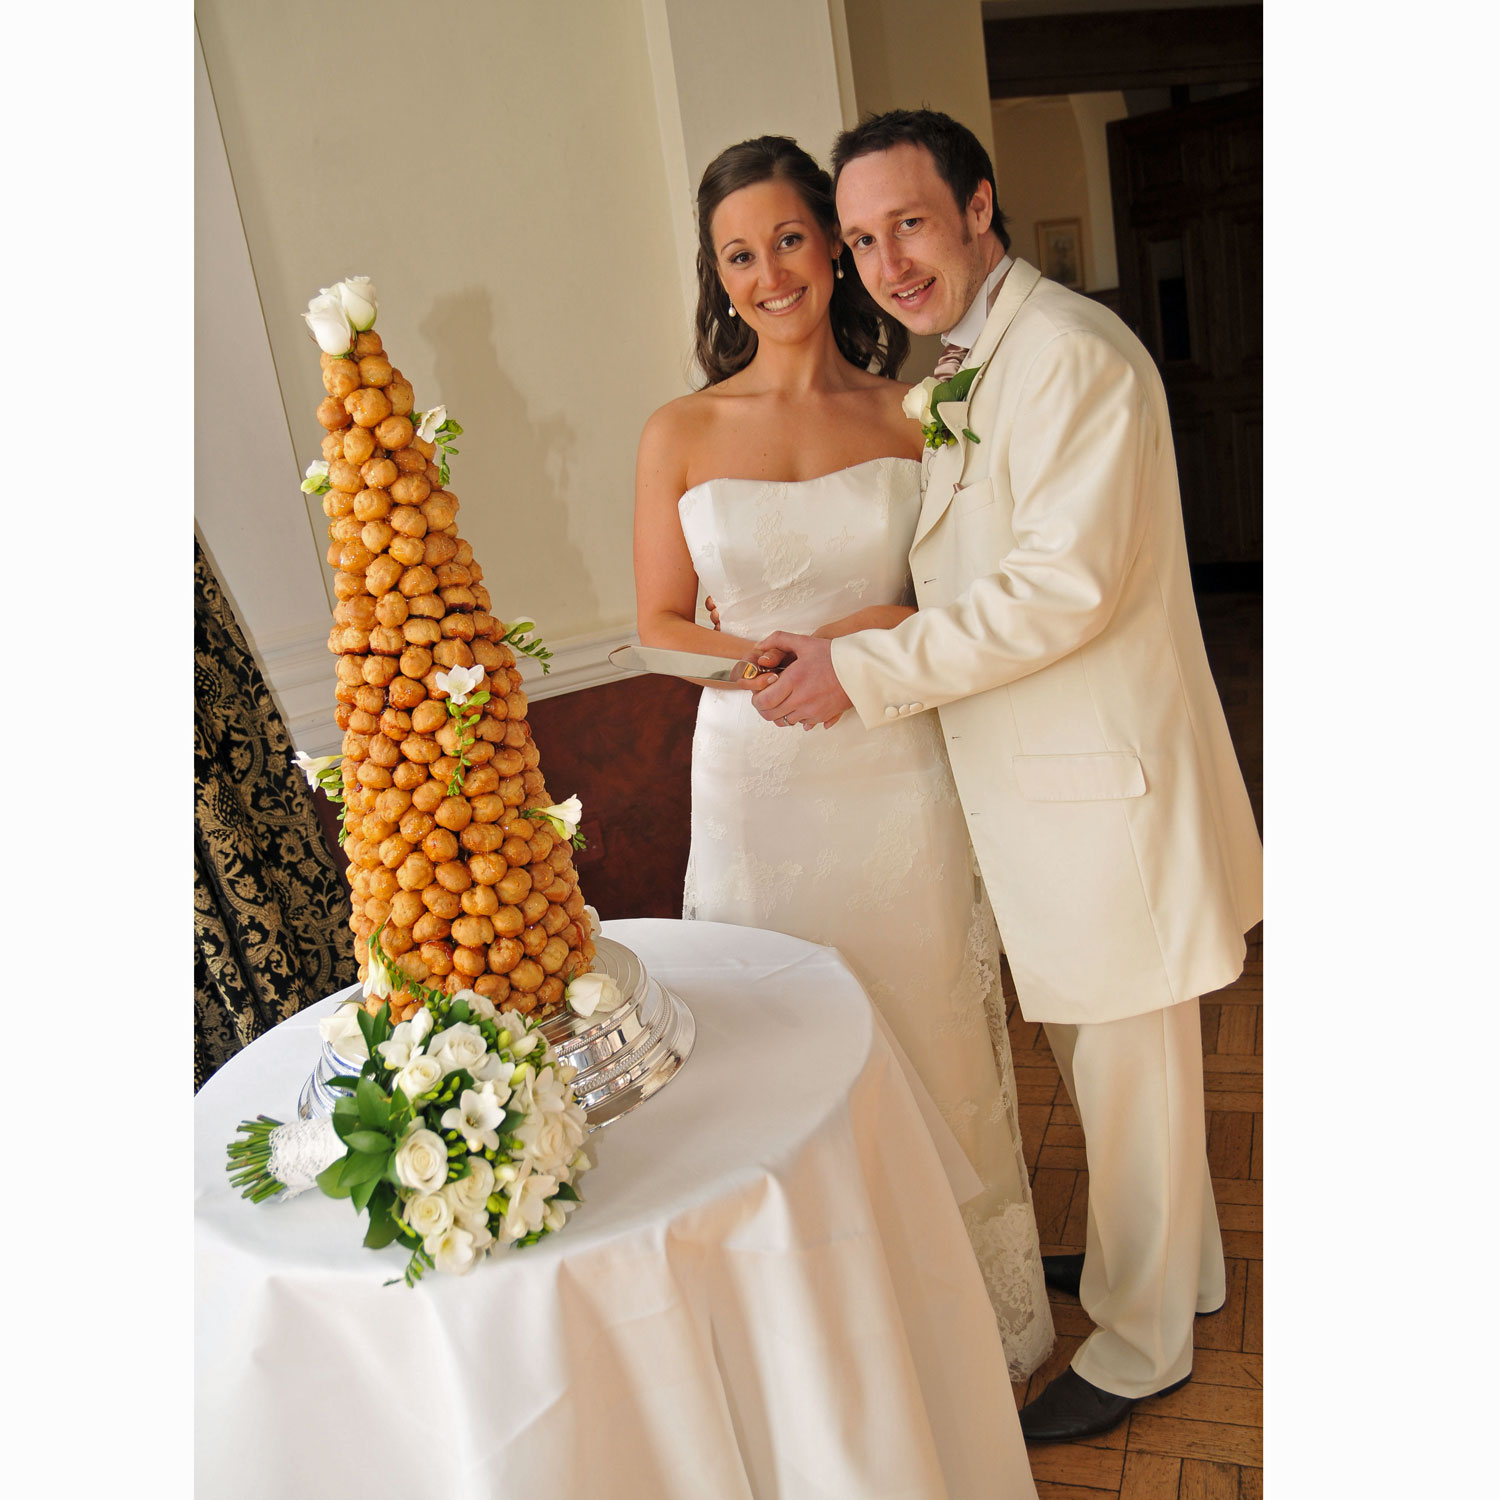 Brigitte and Alastiar cut their Croquembouche